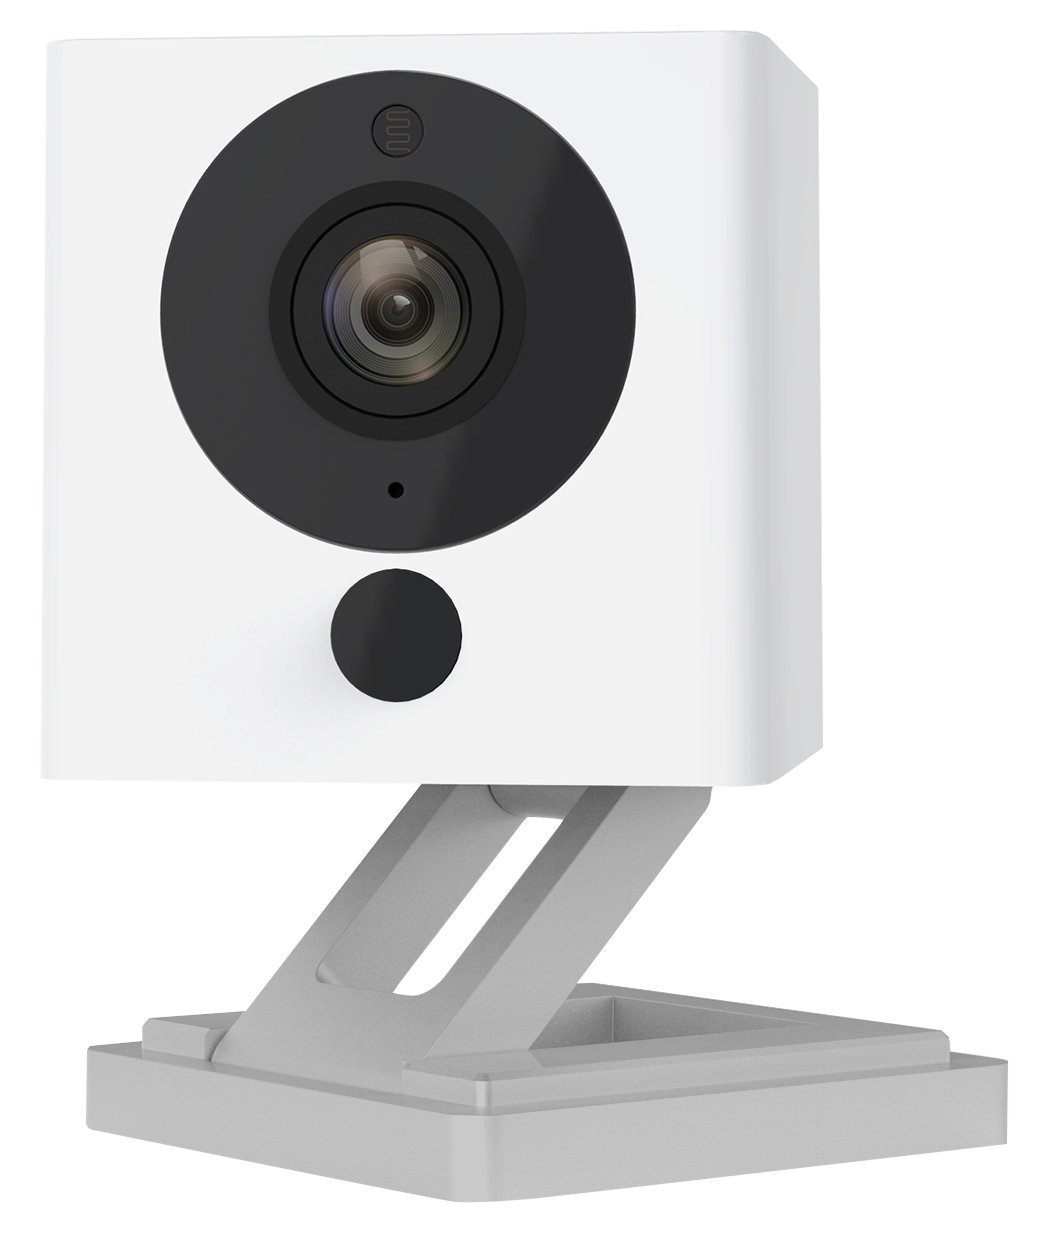 best night vision security camra to buy Wyze Cam Indoor Night Vision Security surveillance system